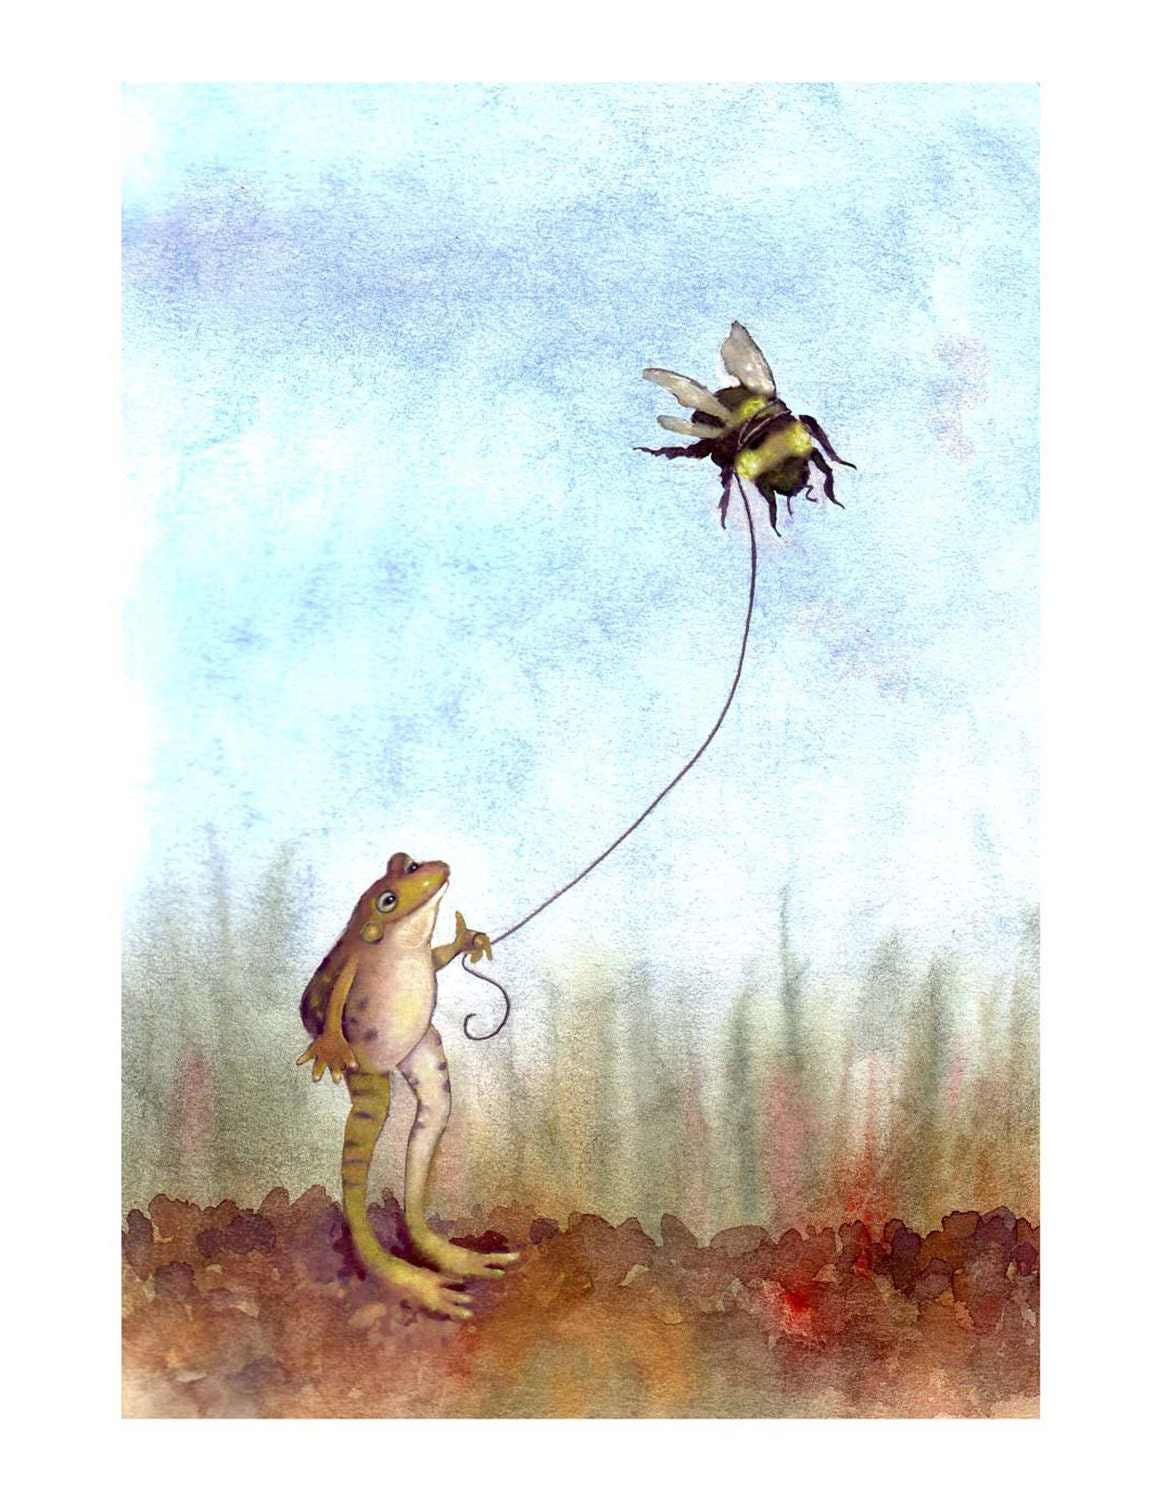 Frog & Bumblebee Print- Bee and Frog Art Watercolor Illustrationt- 'Go Fly A Bumblebee'